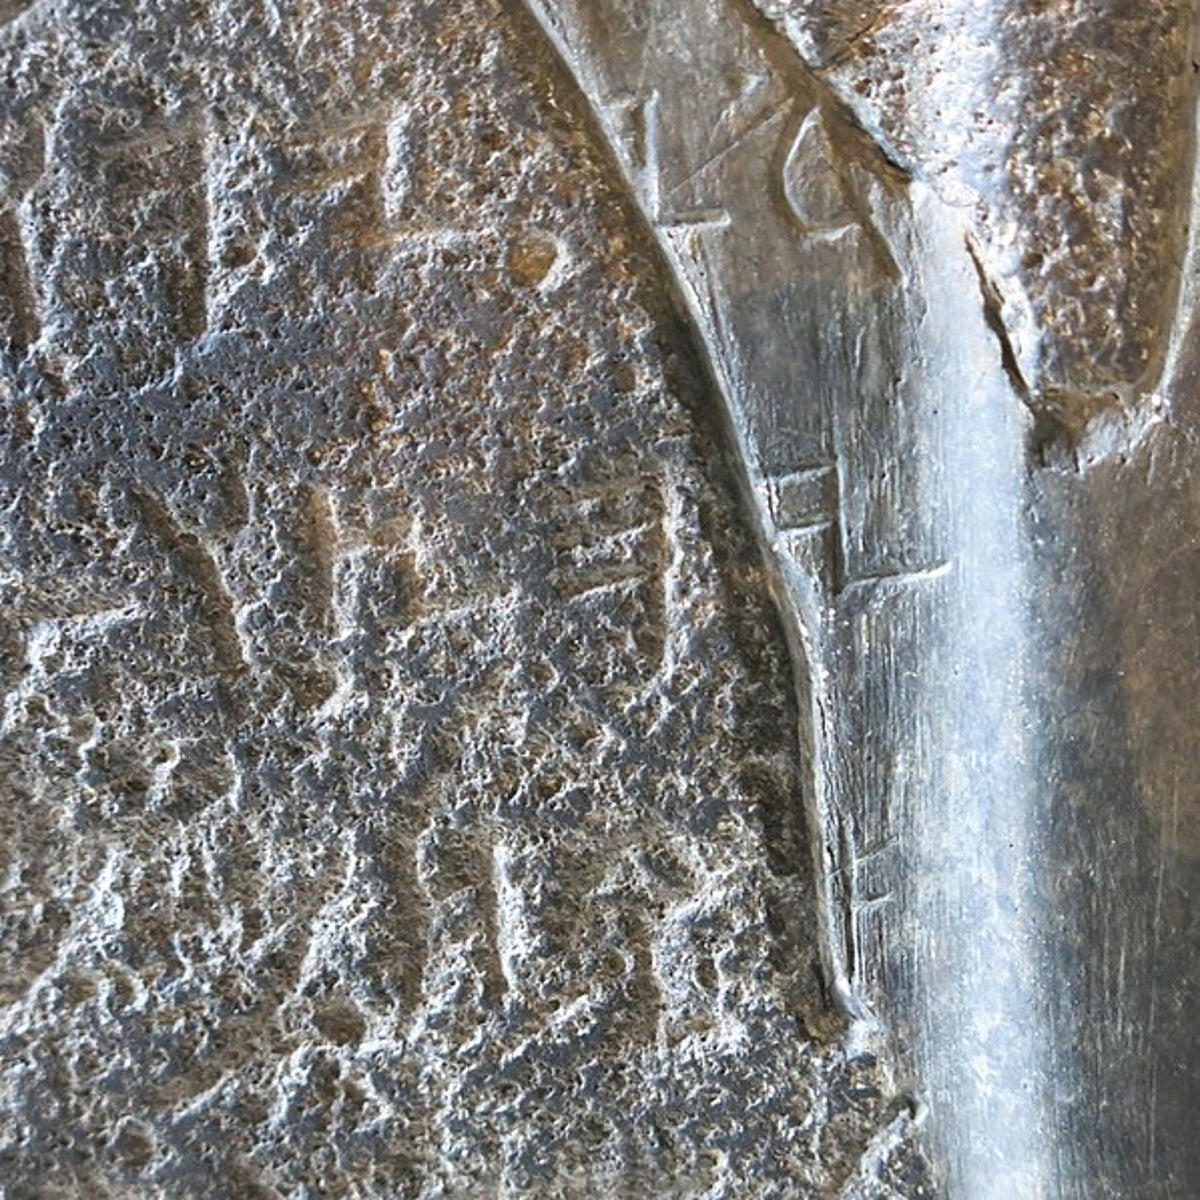 Details with the word YHWH on the stele of Mesha, king of Moab, describing and commemorating his victory against kings of Israel. Basalt, circa 850 BC. Dhiban (Jordan). Louvre museum (Paris, France).